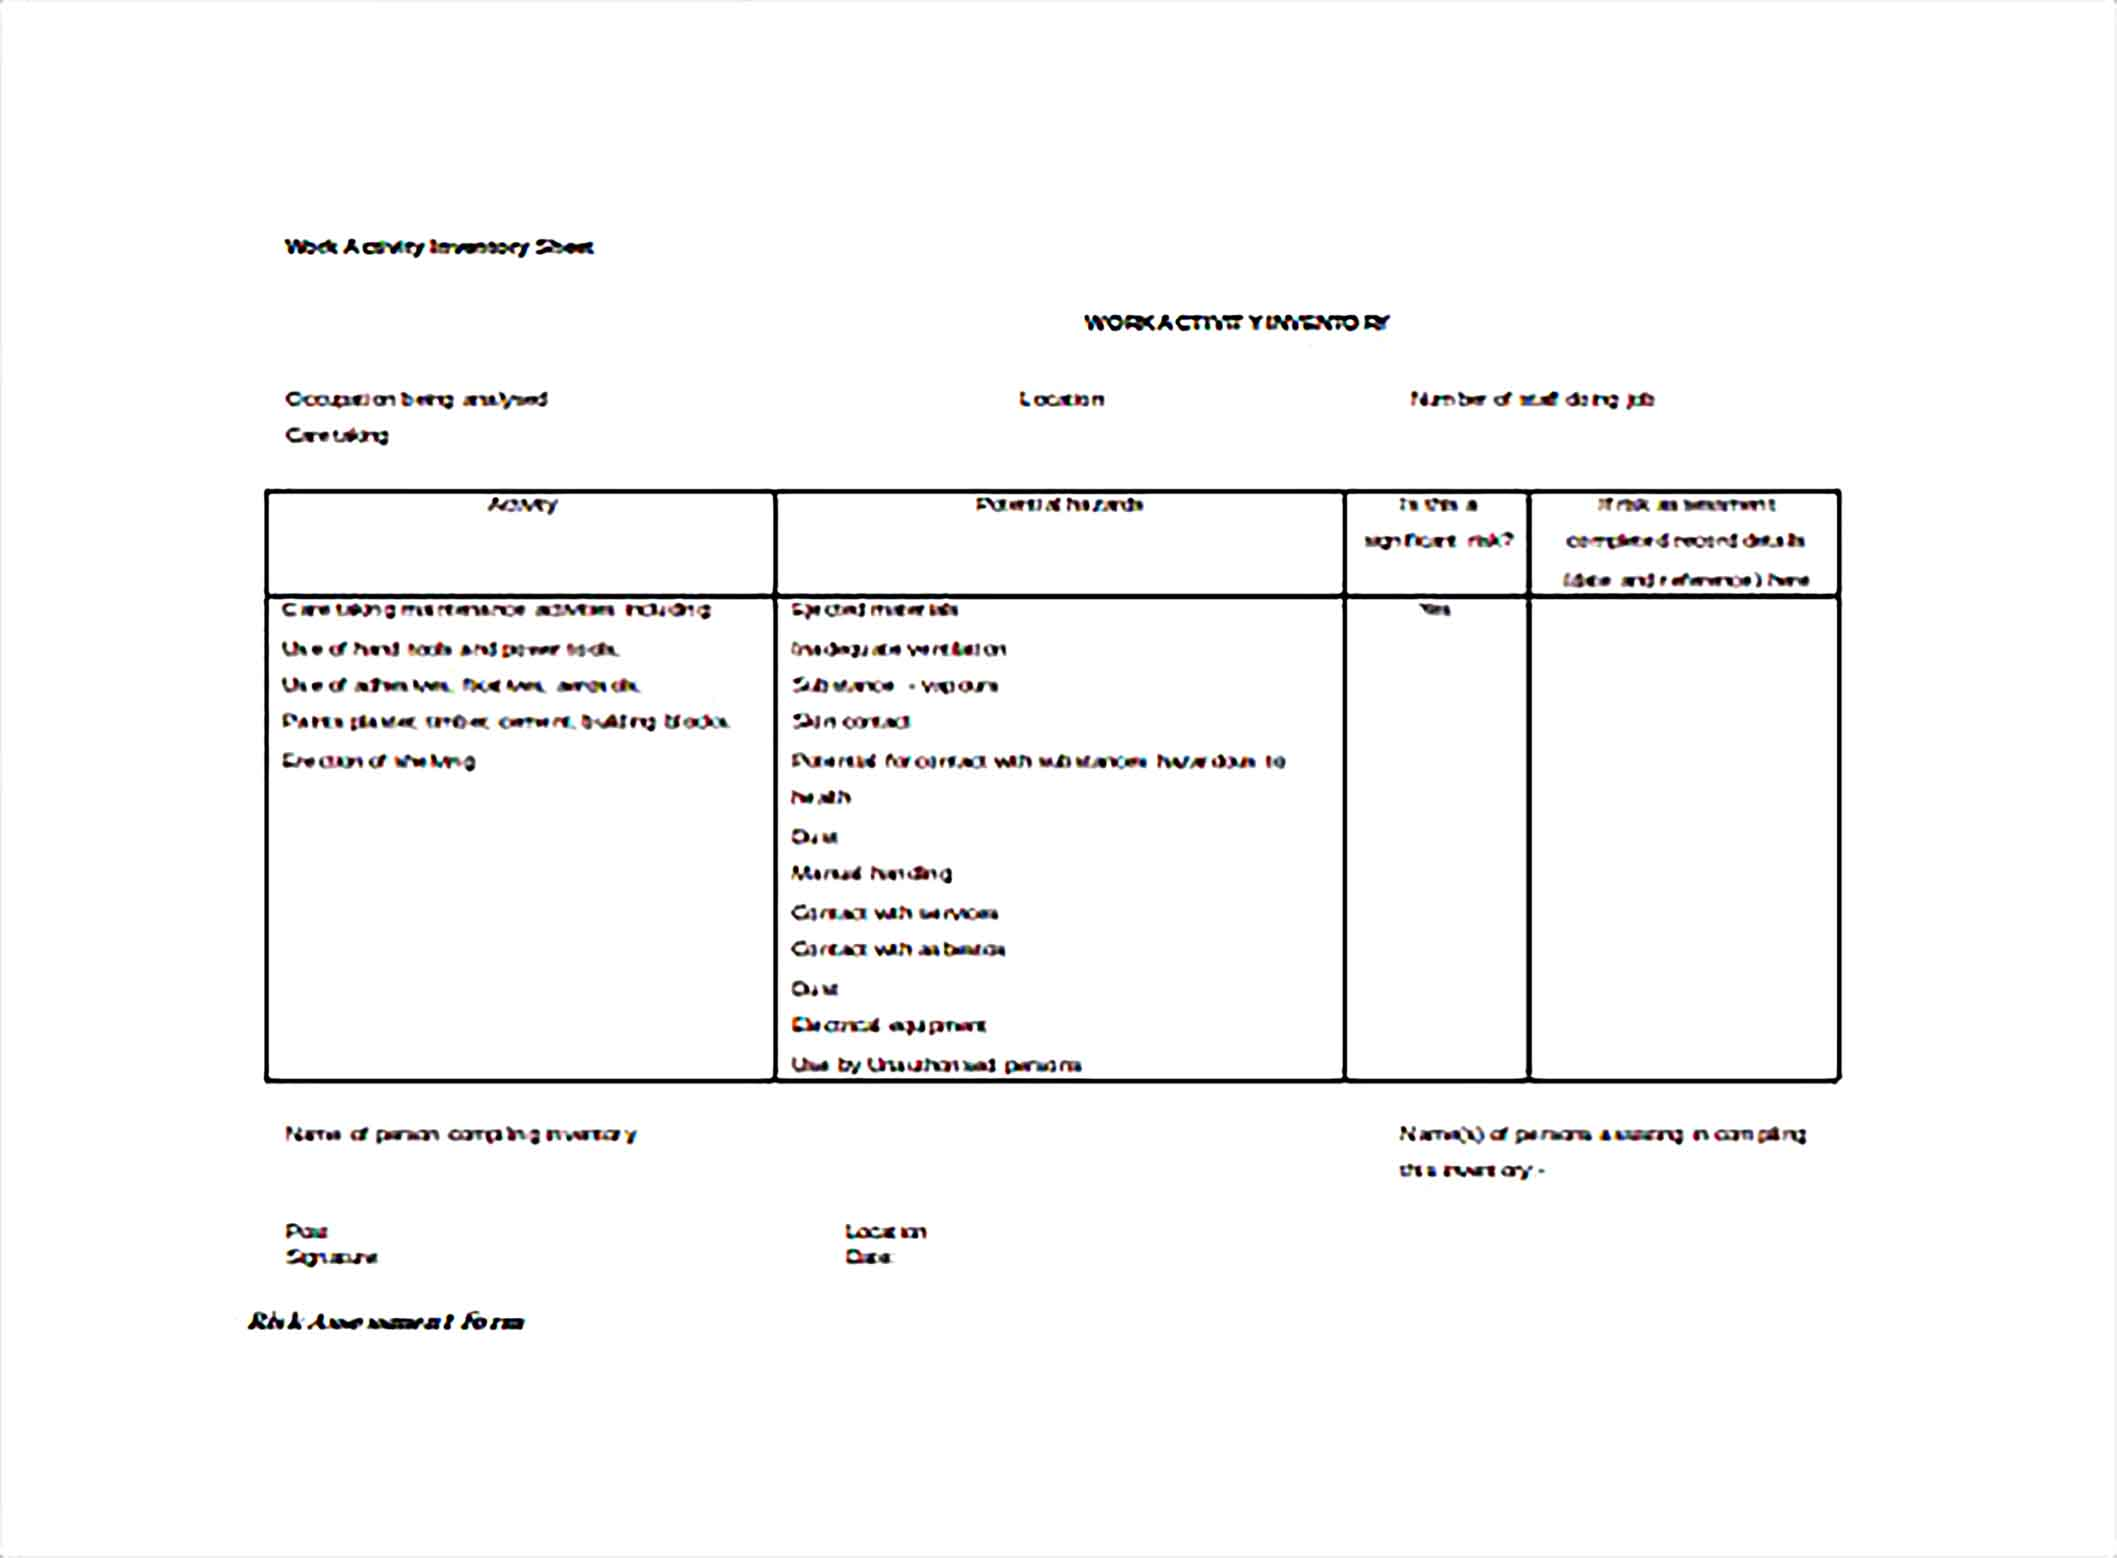 Work Activity Inventory Spreadsheet Word Template Free Download  1